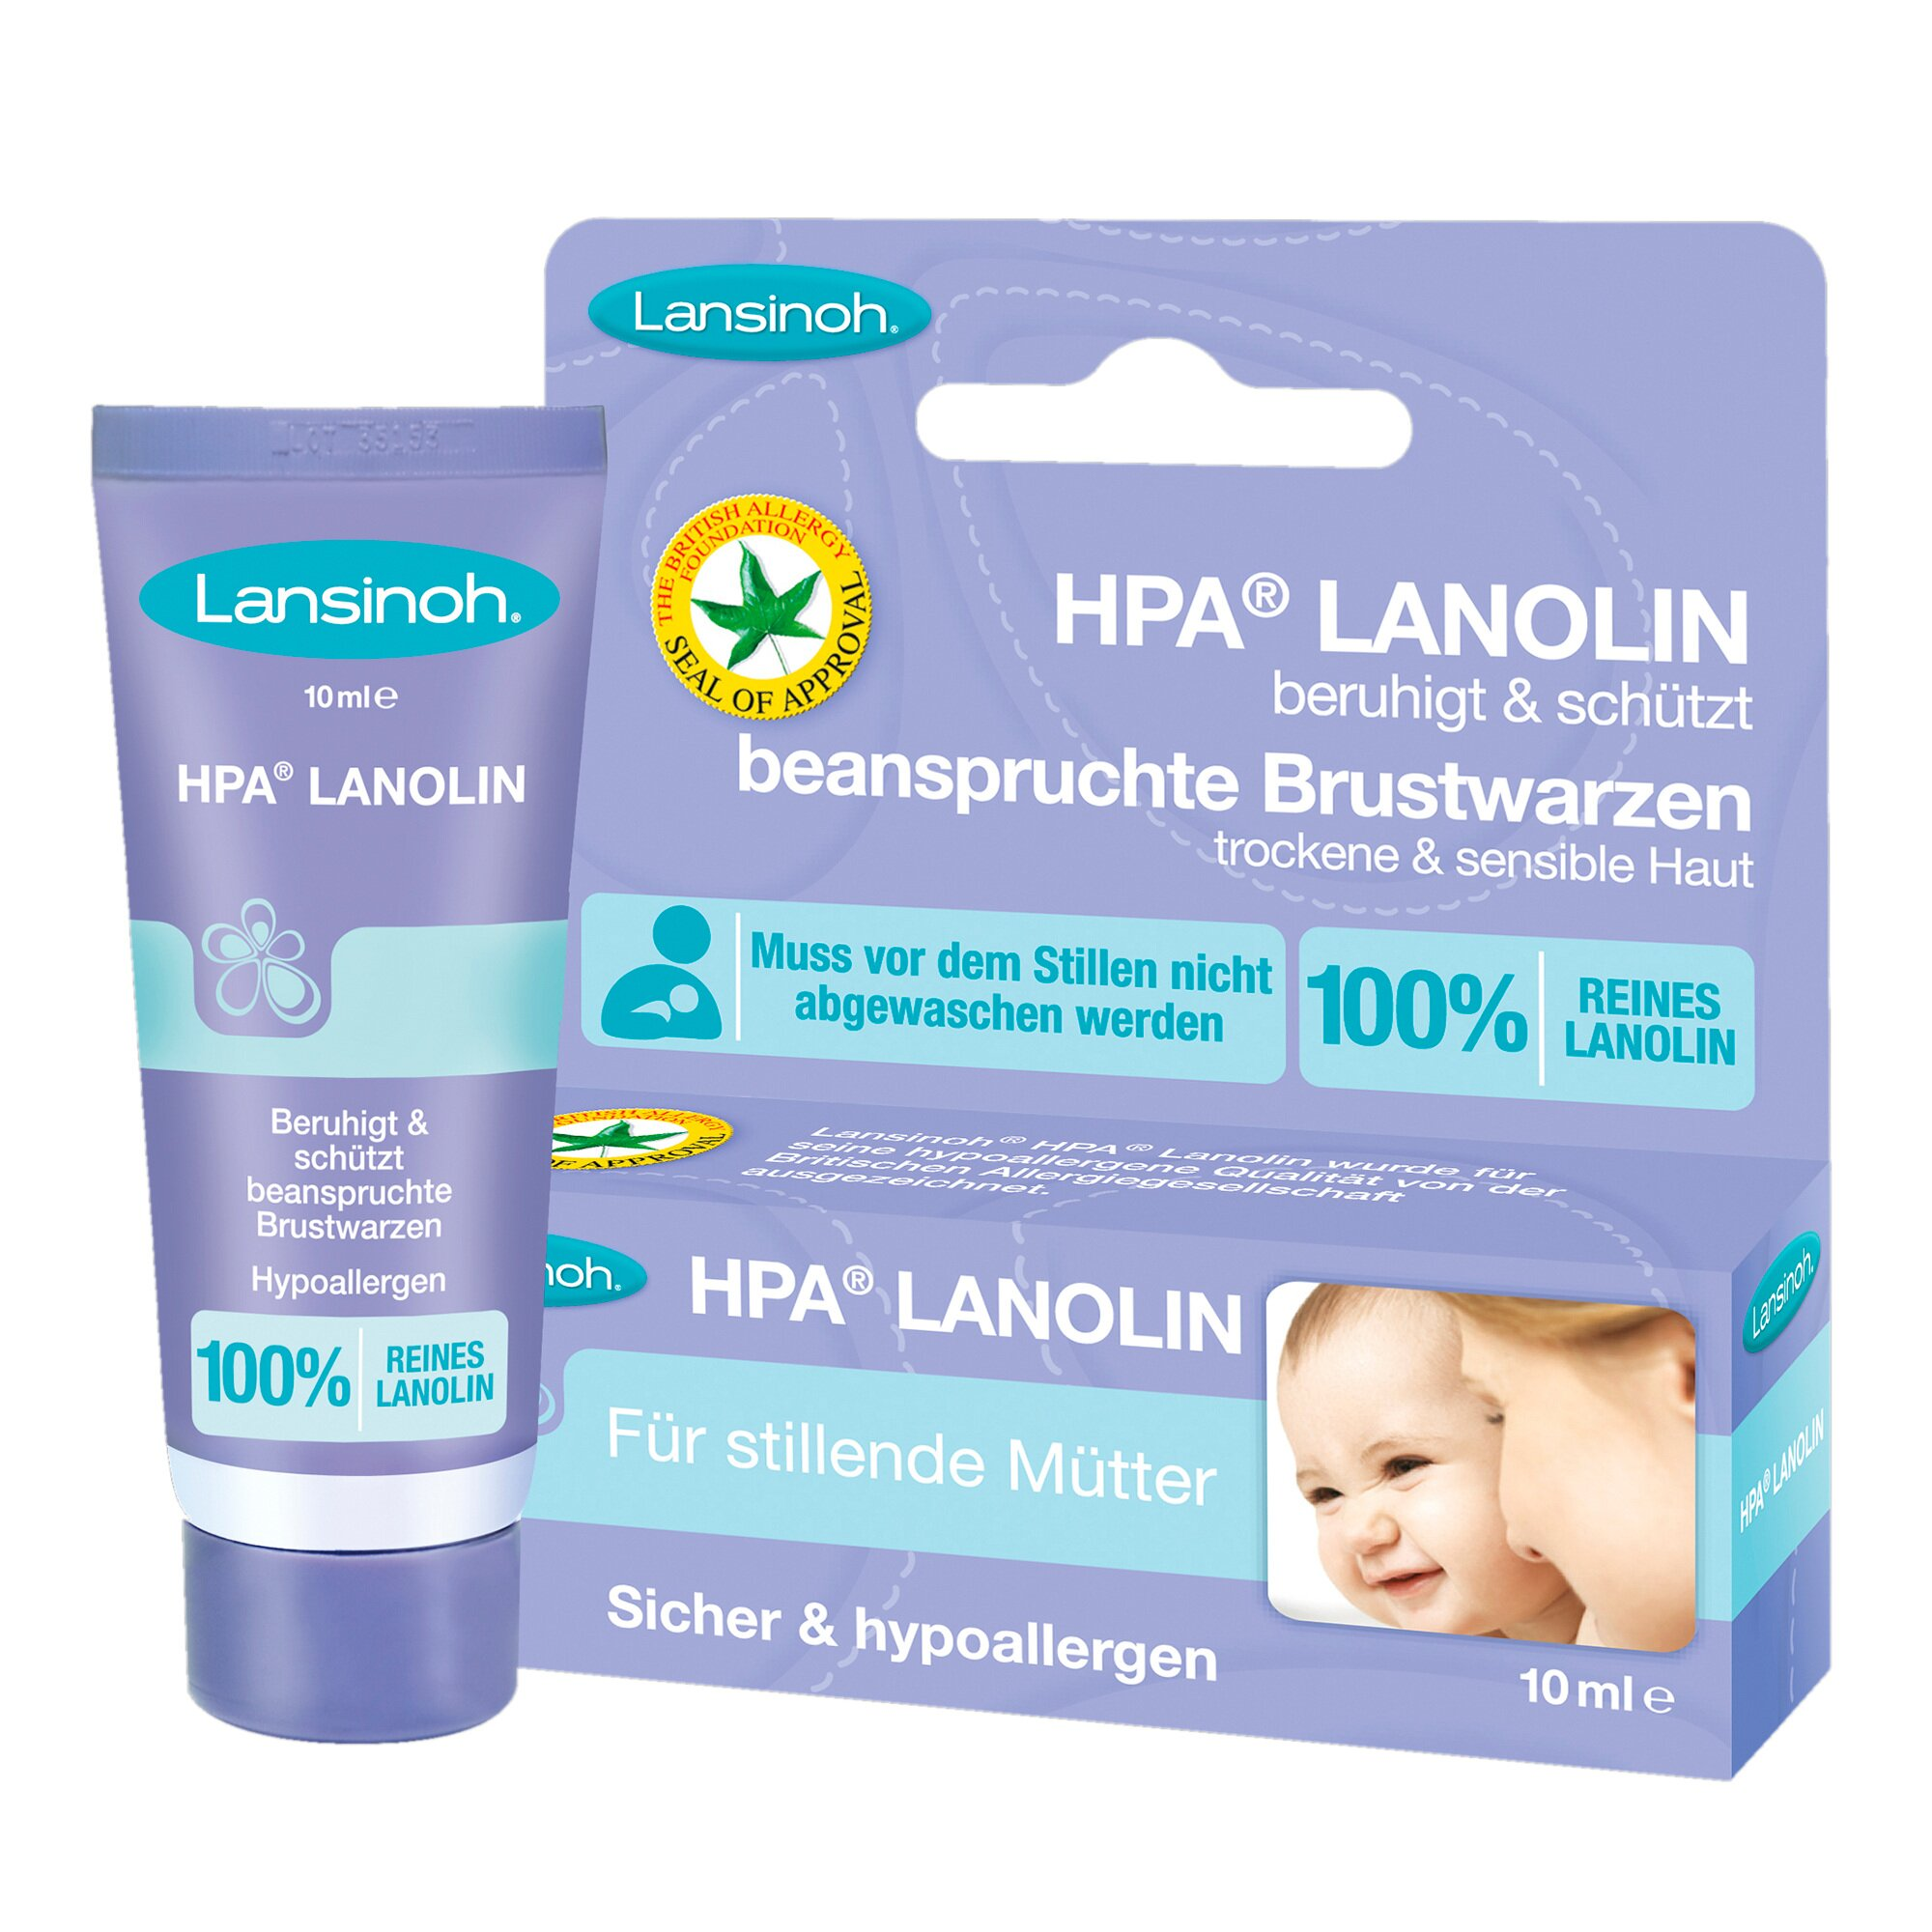 Lansinoh Brustwarzencreme HPA® Lanolin 10 ml